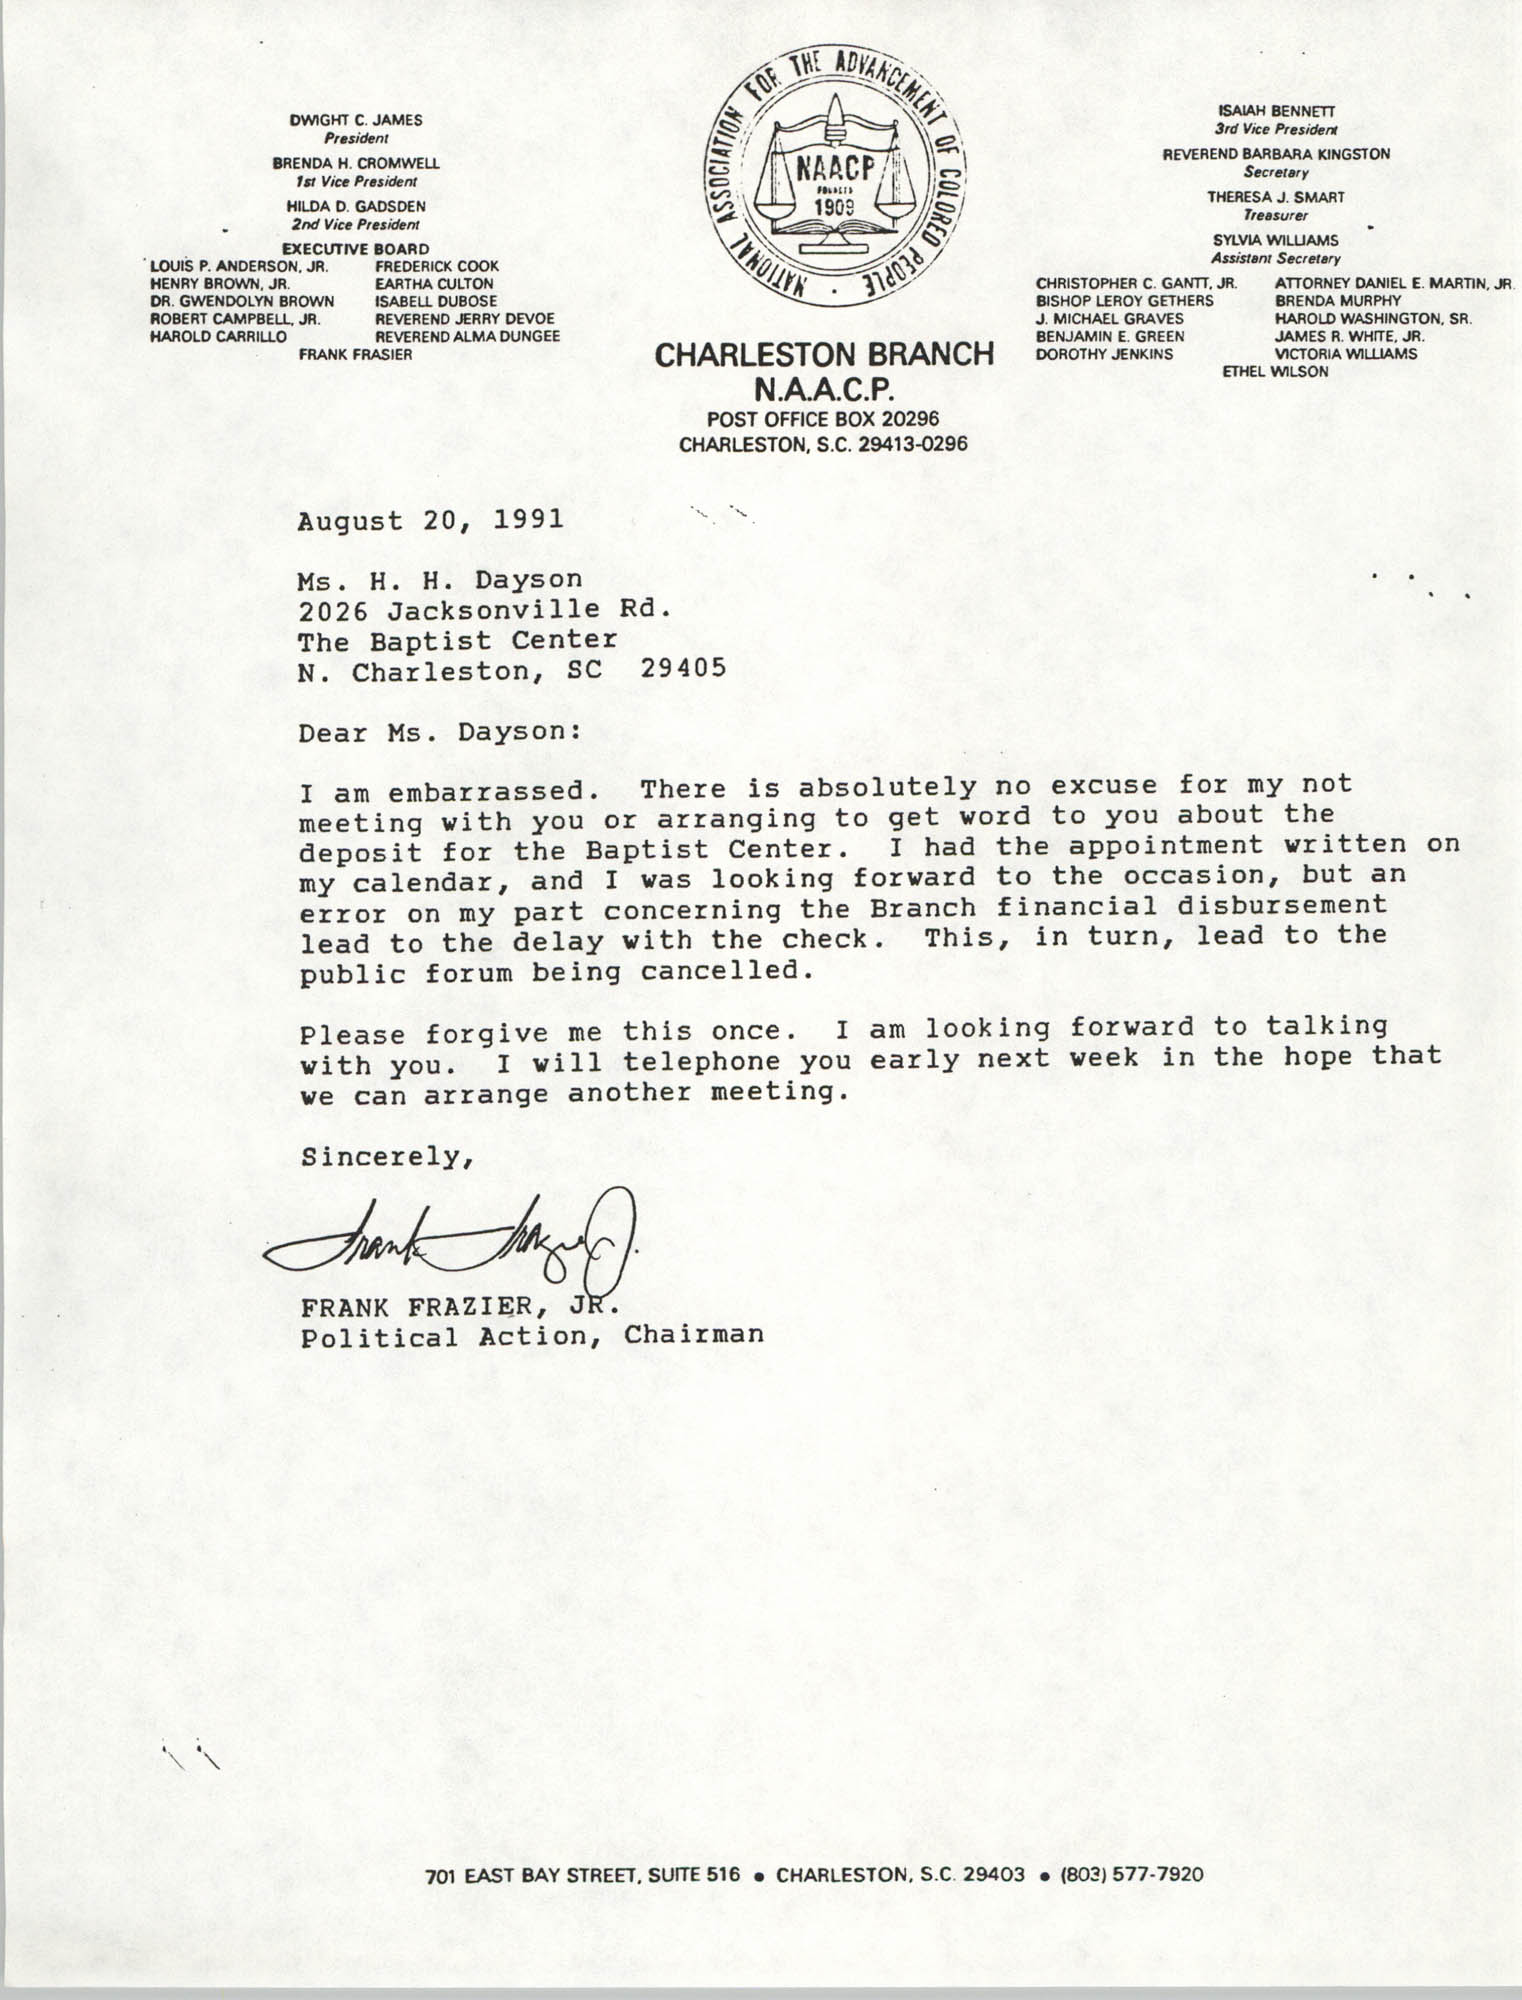 Letter from Frank Frazier Jr. to H.H. Dayson, August 20, 1991